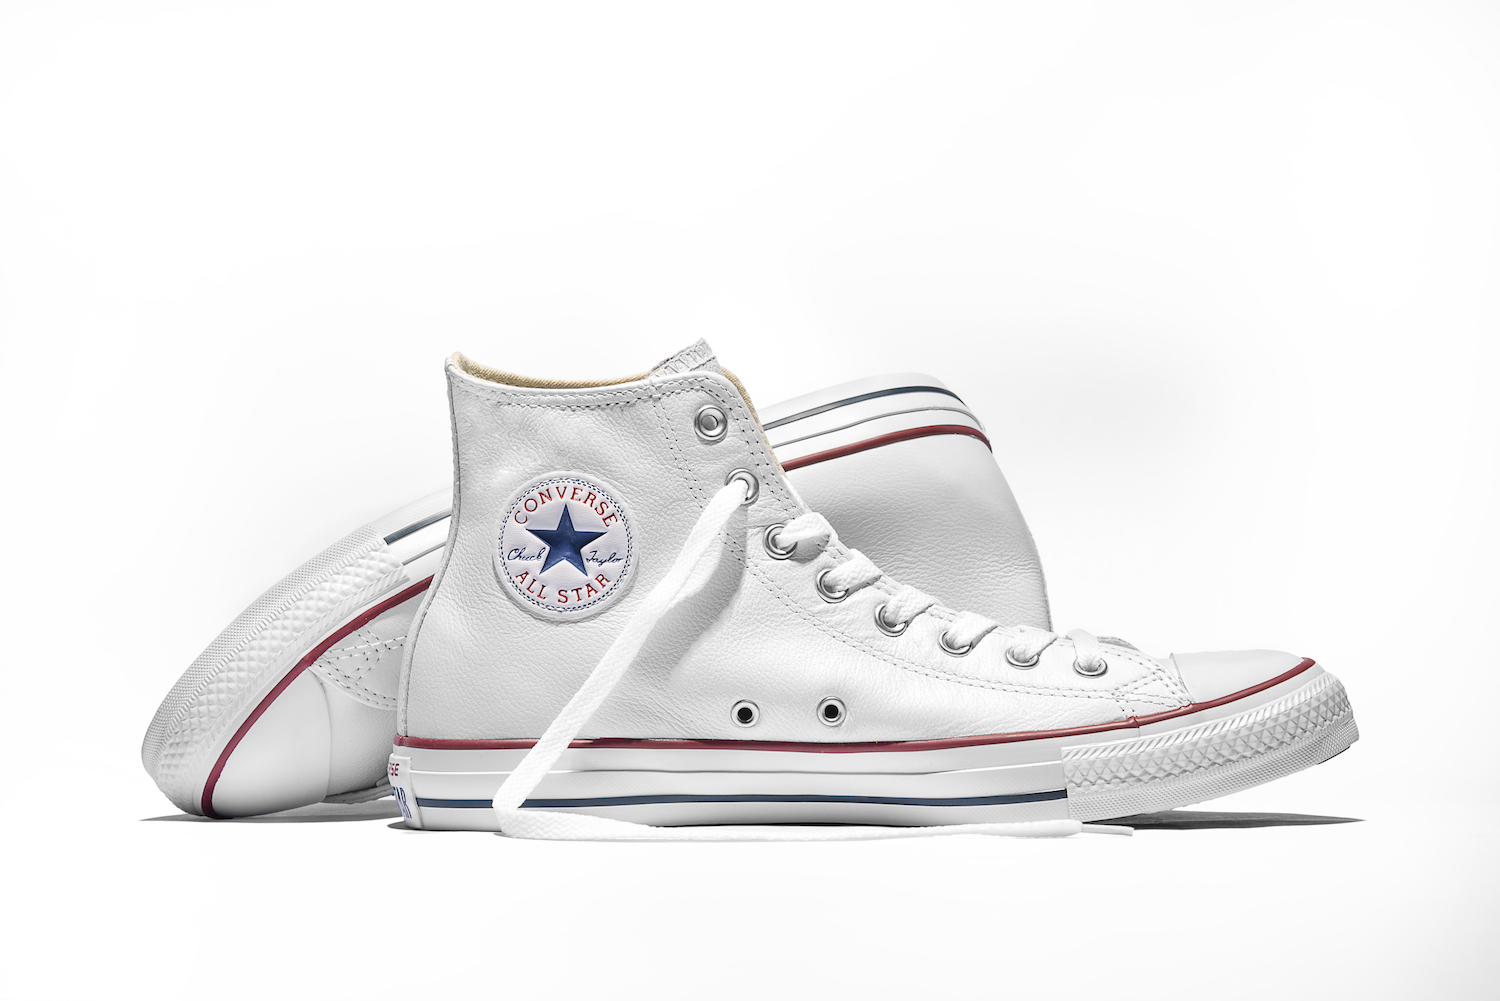 572156062a7ea CONVERSE CHUCK TAYLOR ALL STAR LEATHER NOW AVAILABLE AT CONVERSE ...